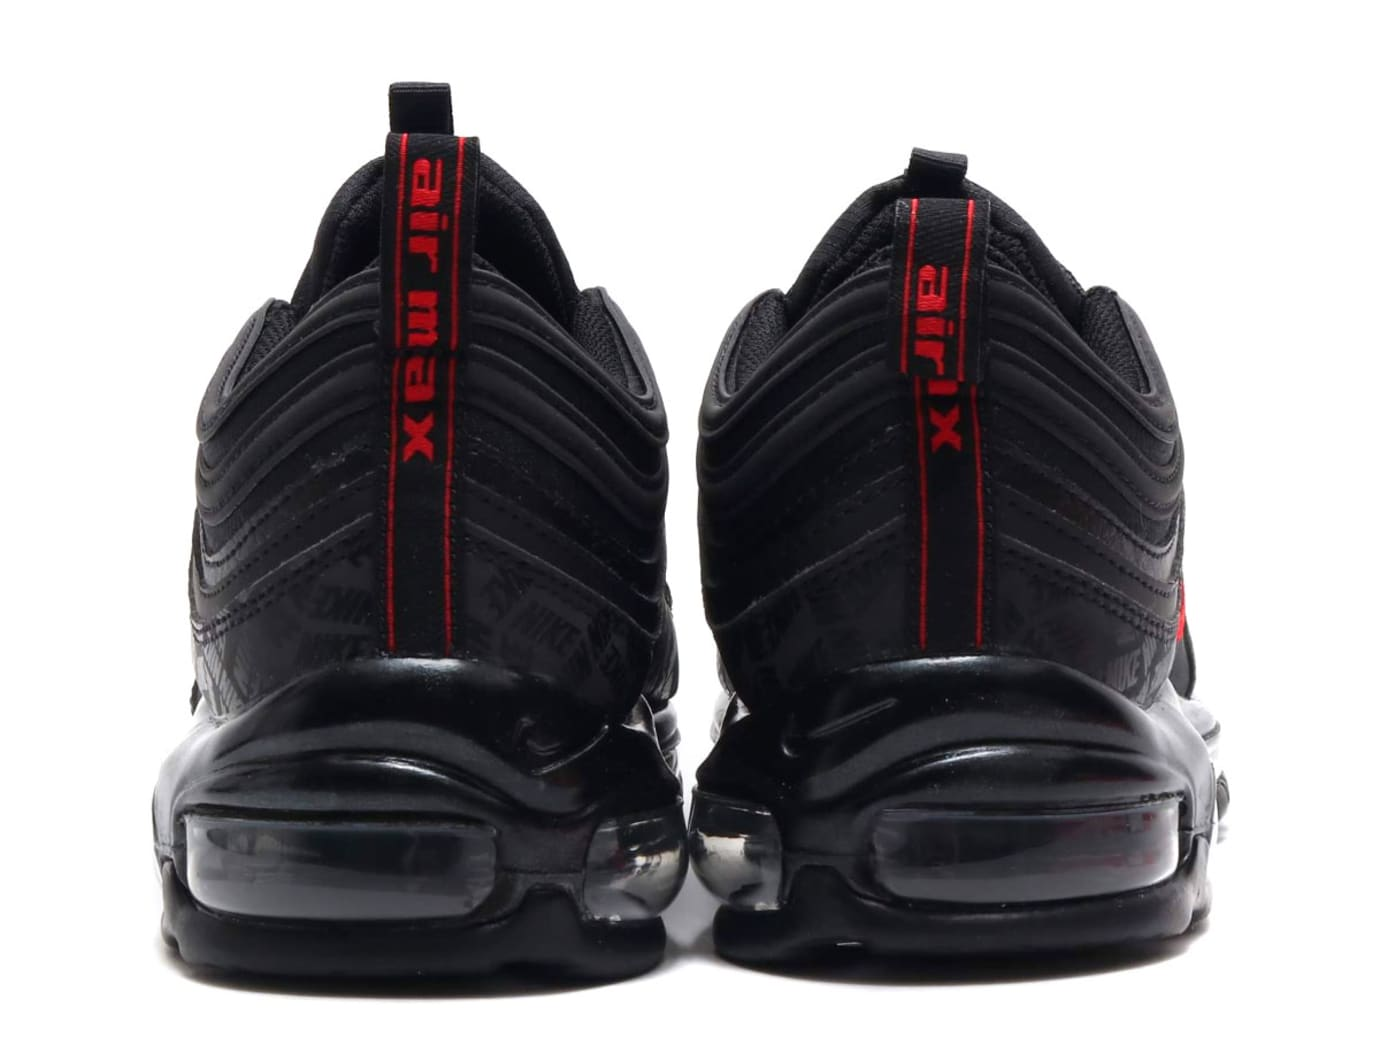 Nike Air Max 97 Black/University Red-Black AR4259-001 (Heel)